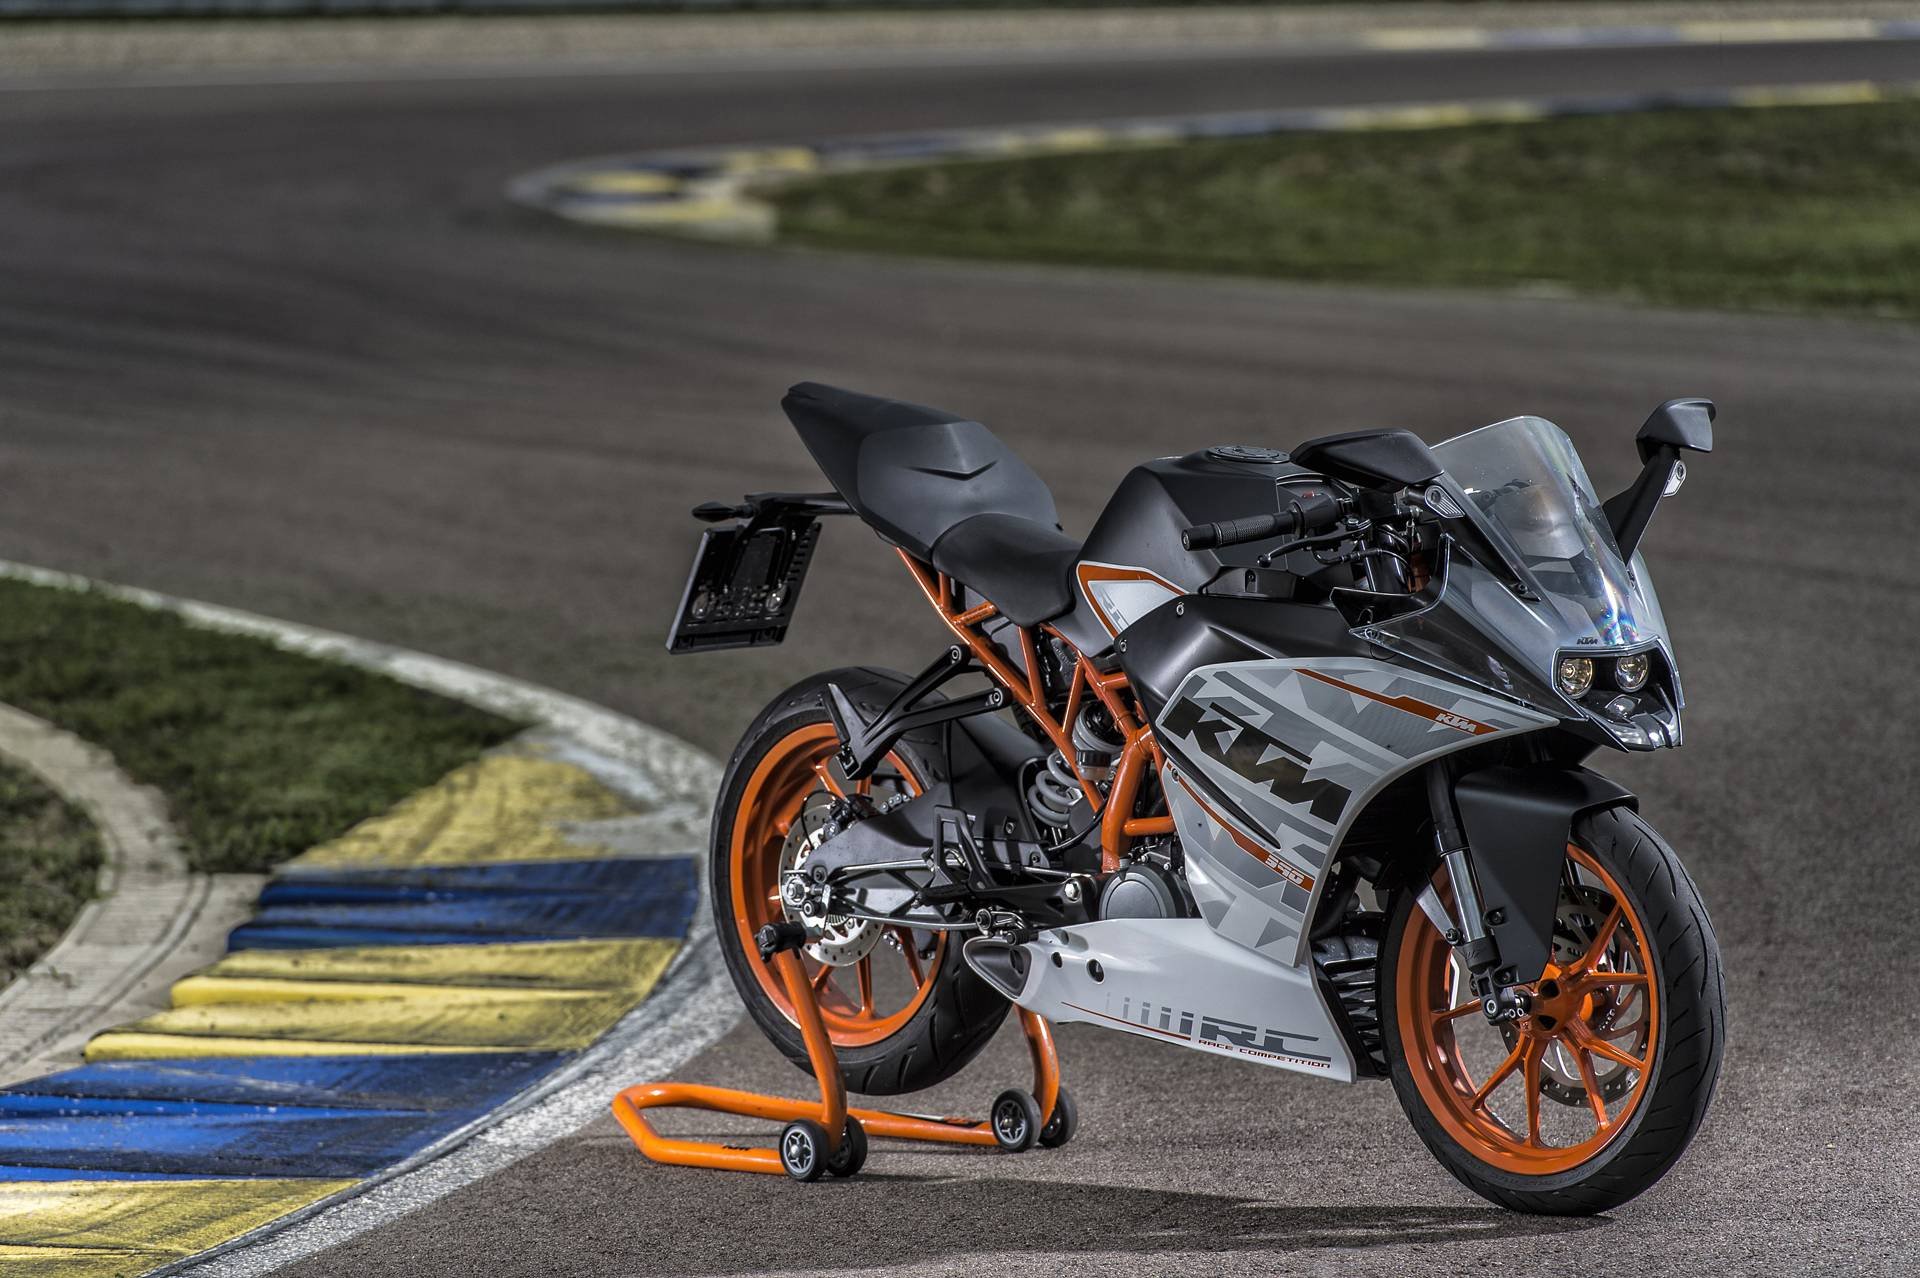 2014 Motorcycle KTM RC 390 Wallpaper For PC #10005 Wallpaper .